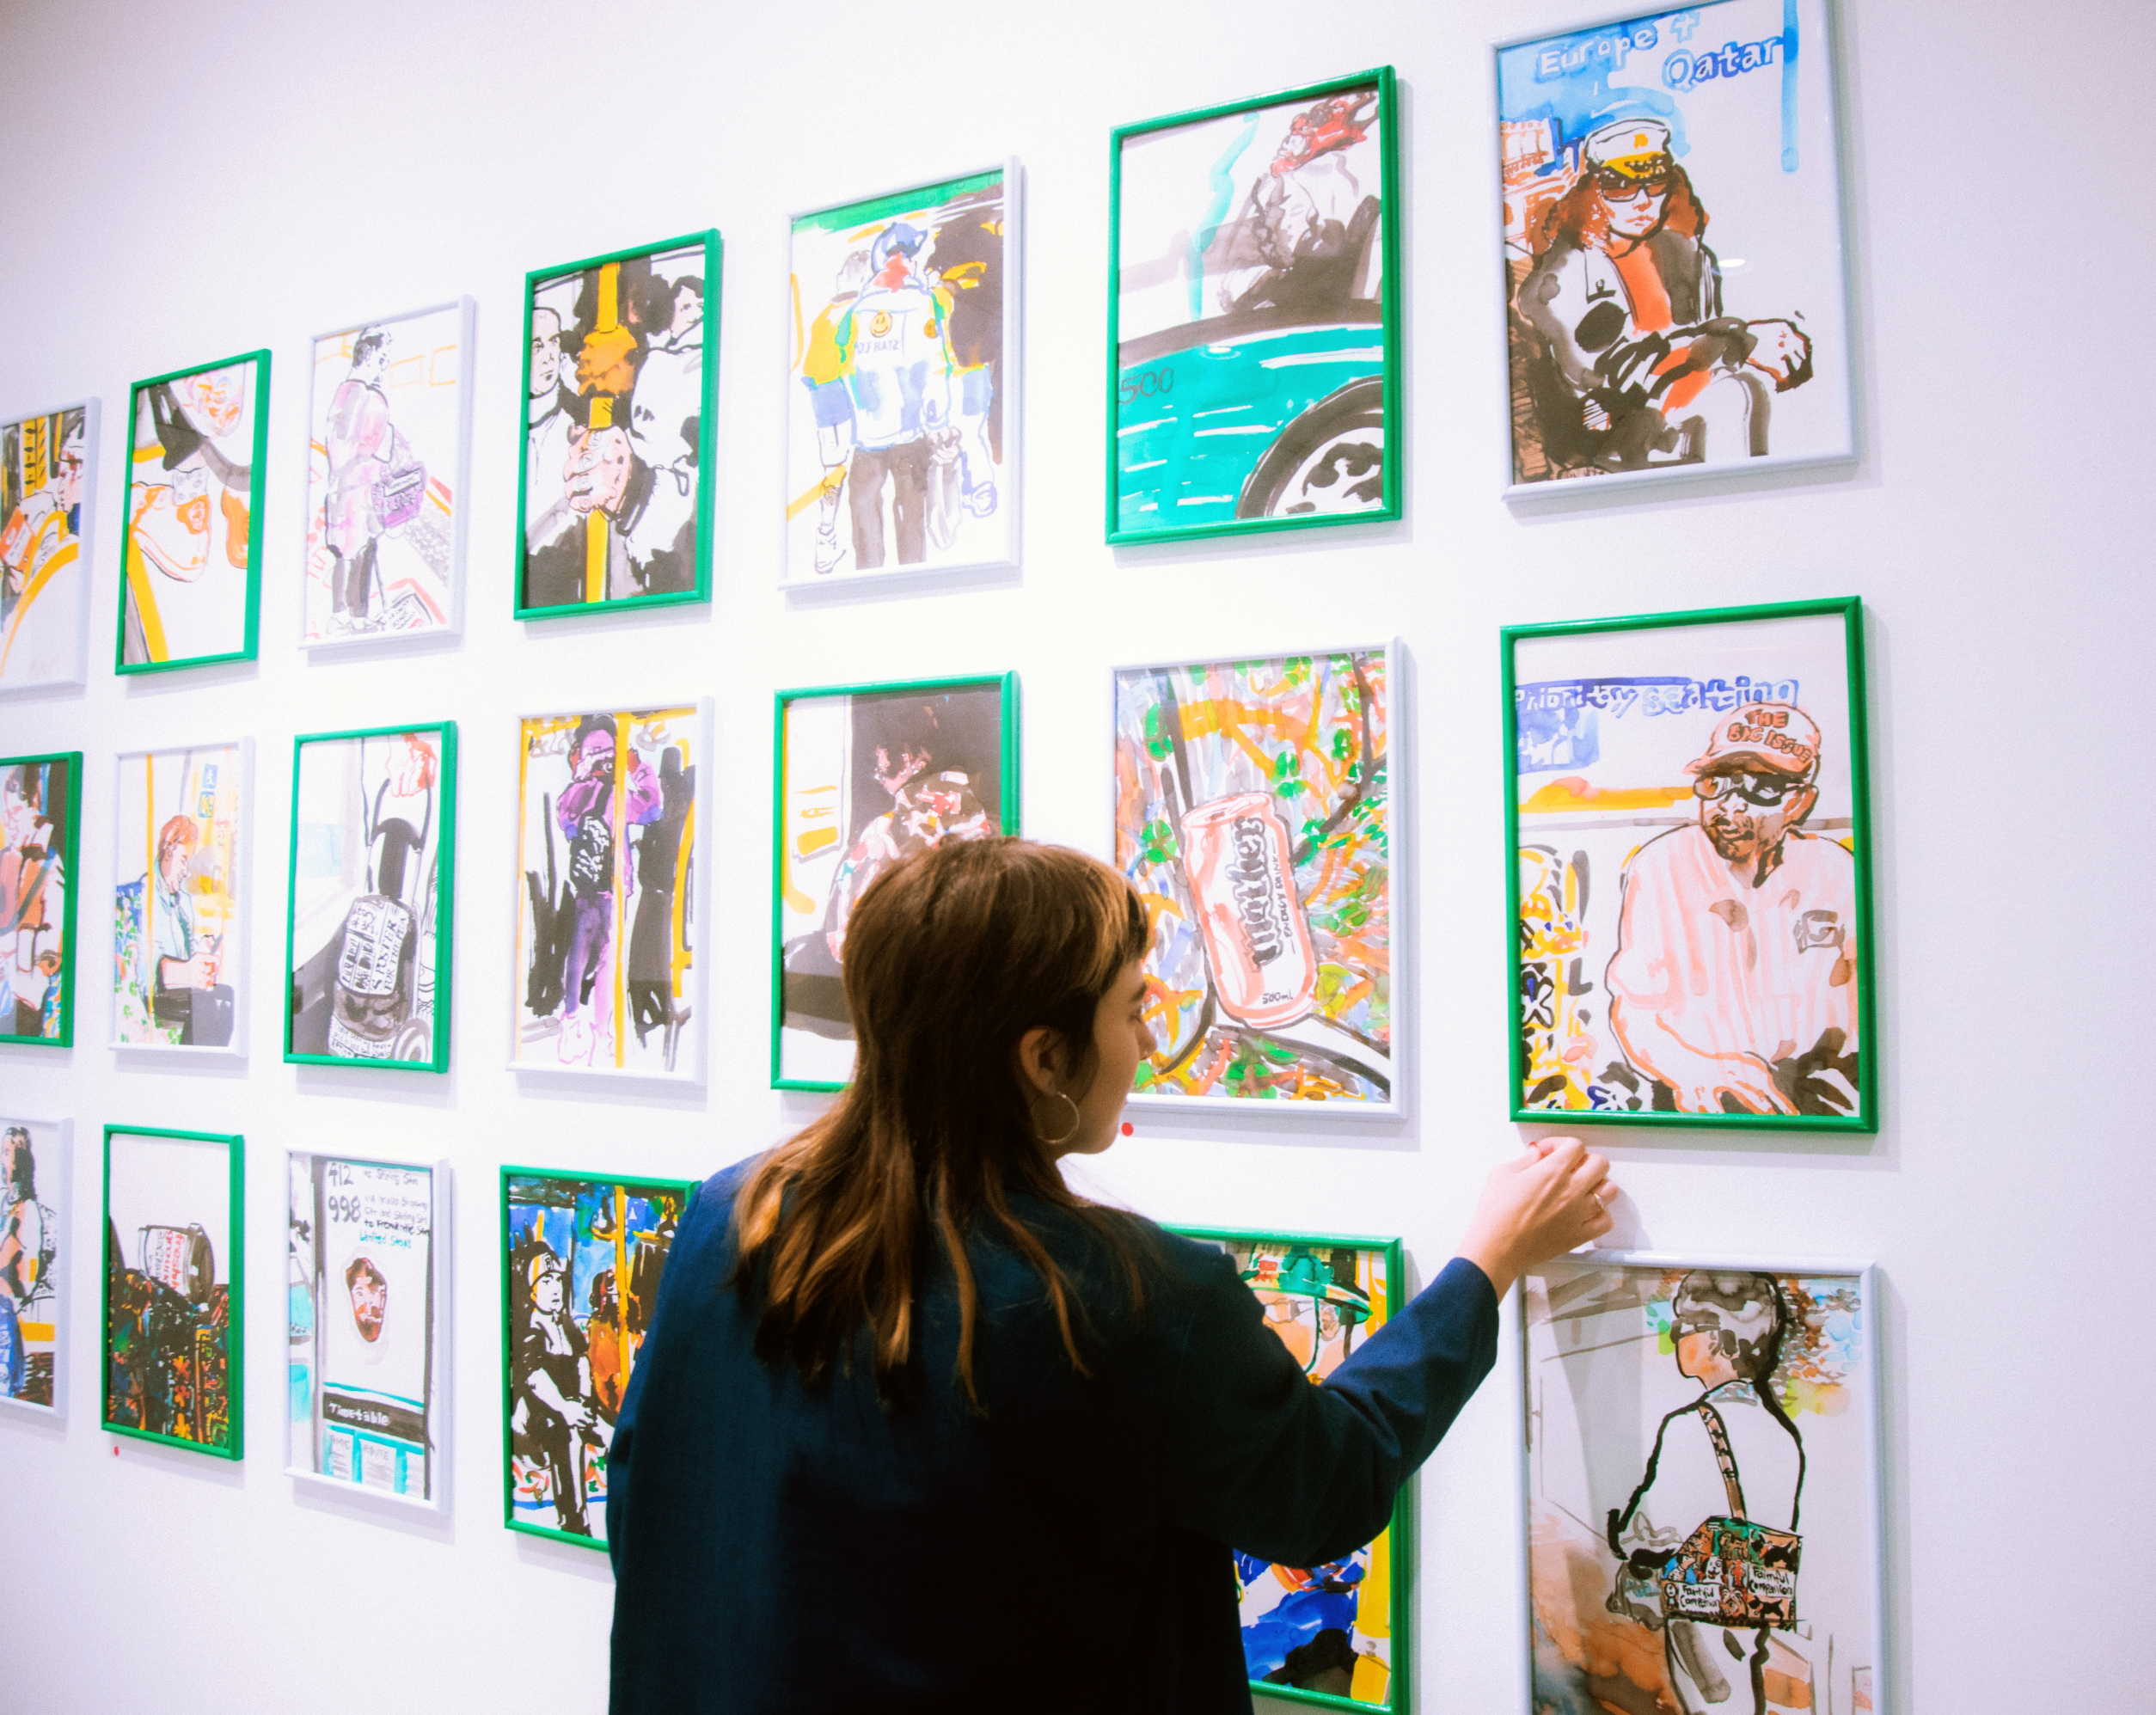 A yoougn female adjusting artworks on the wall of a gallery